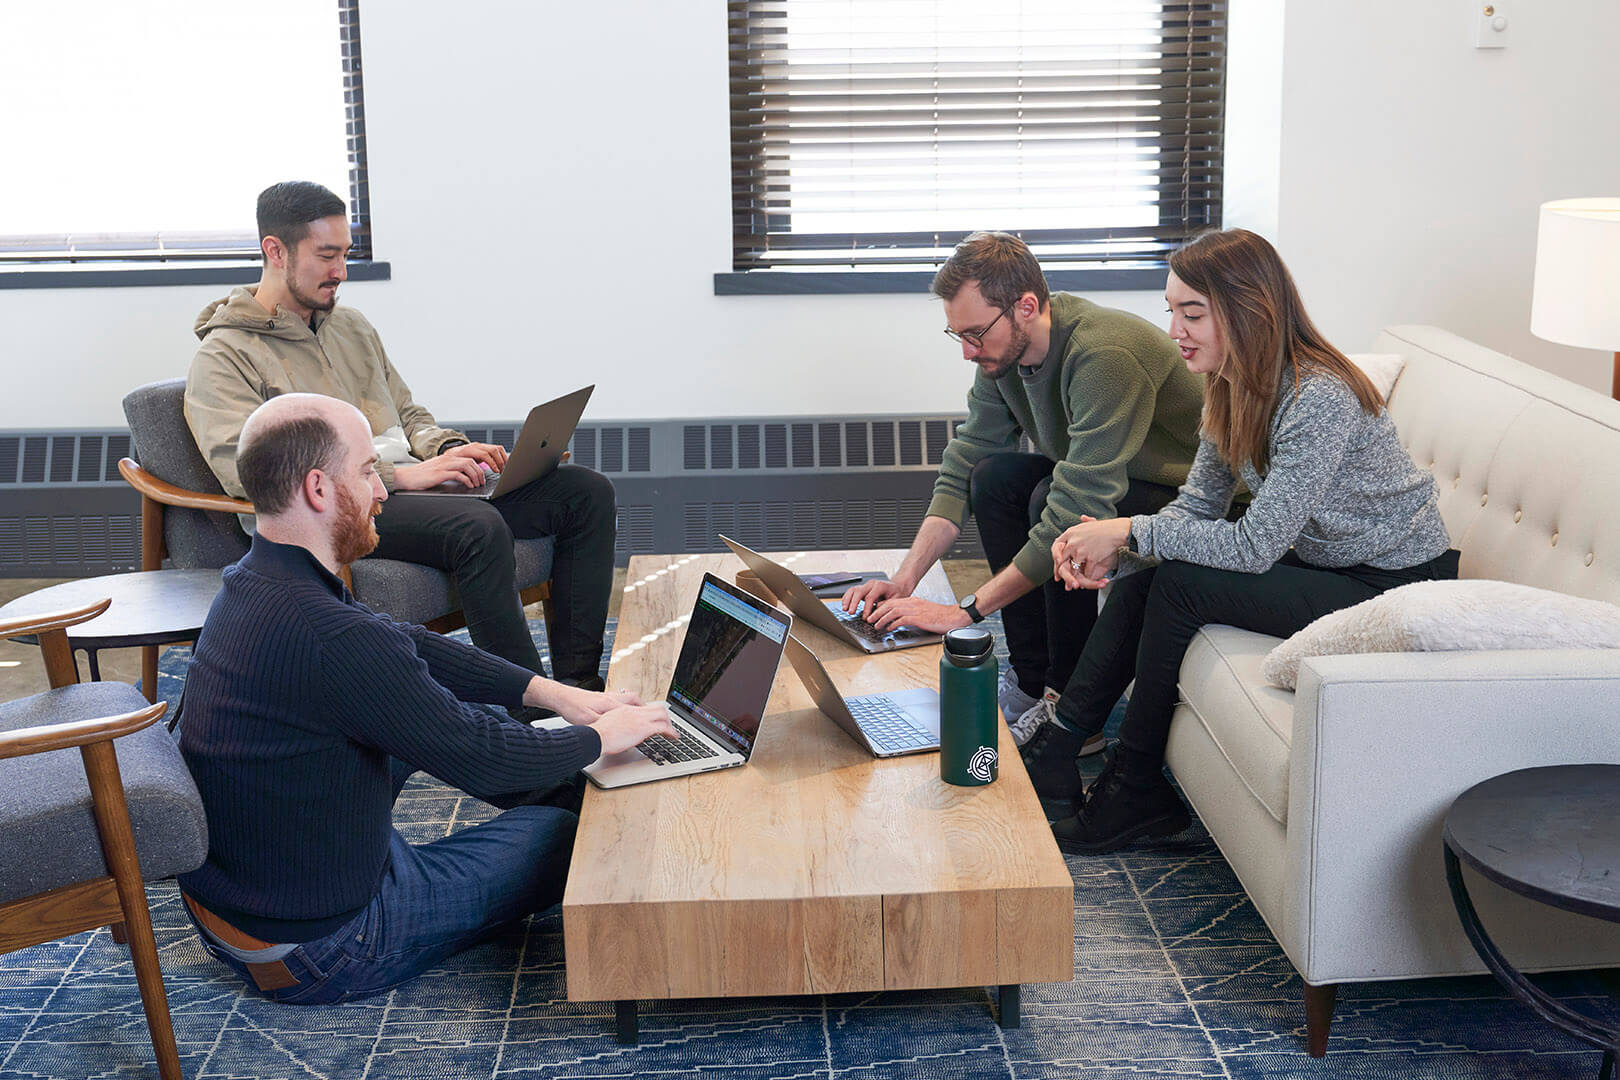 Hologrammers sit around a coffee table in the office and work together